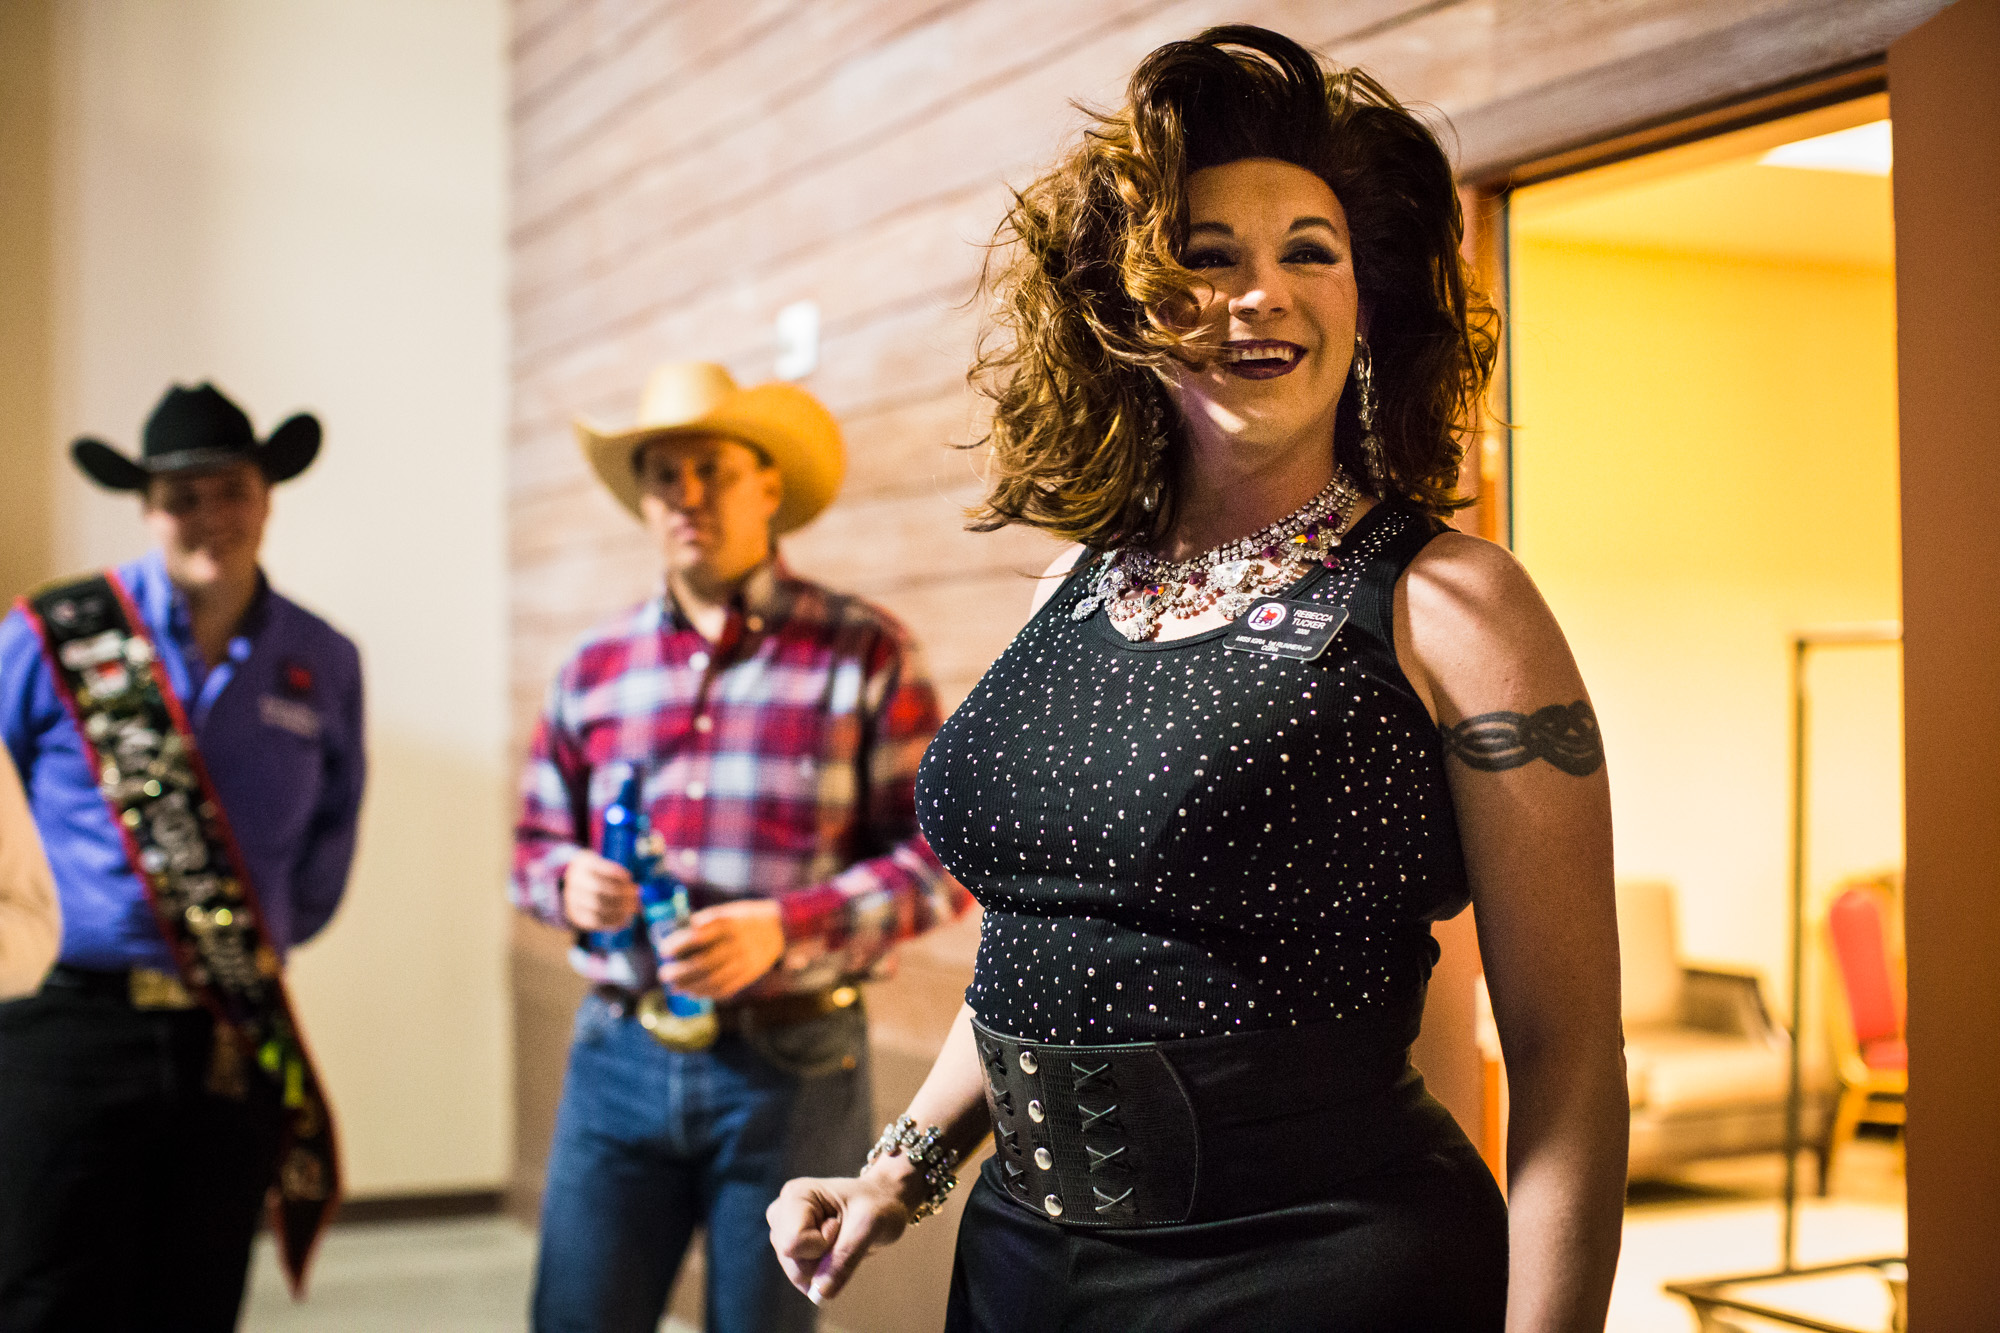 Rebecca Tucker, a contestant for Miss IGRA 2015, waits backstage before performing a song and dance as part of the Royalty Competition at the World Gay Rodeo Finals in Las Vegas, NV.